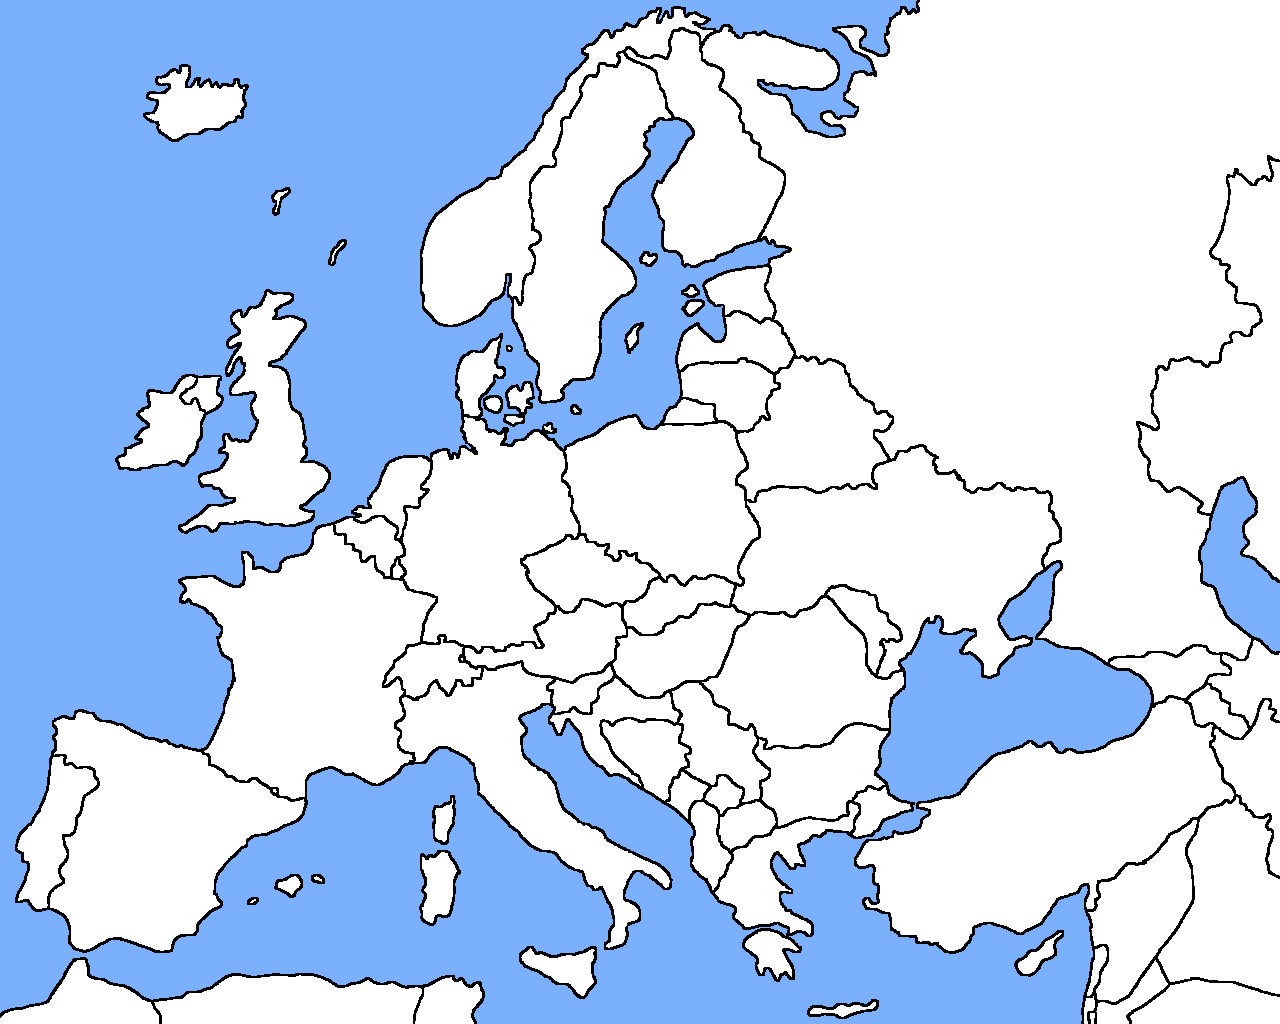 Blank Map Of Europe To Print: